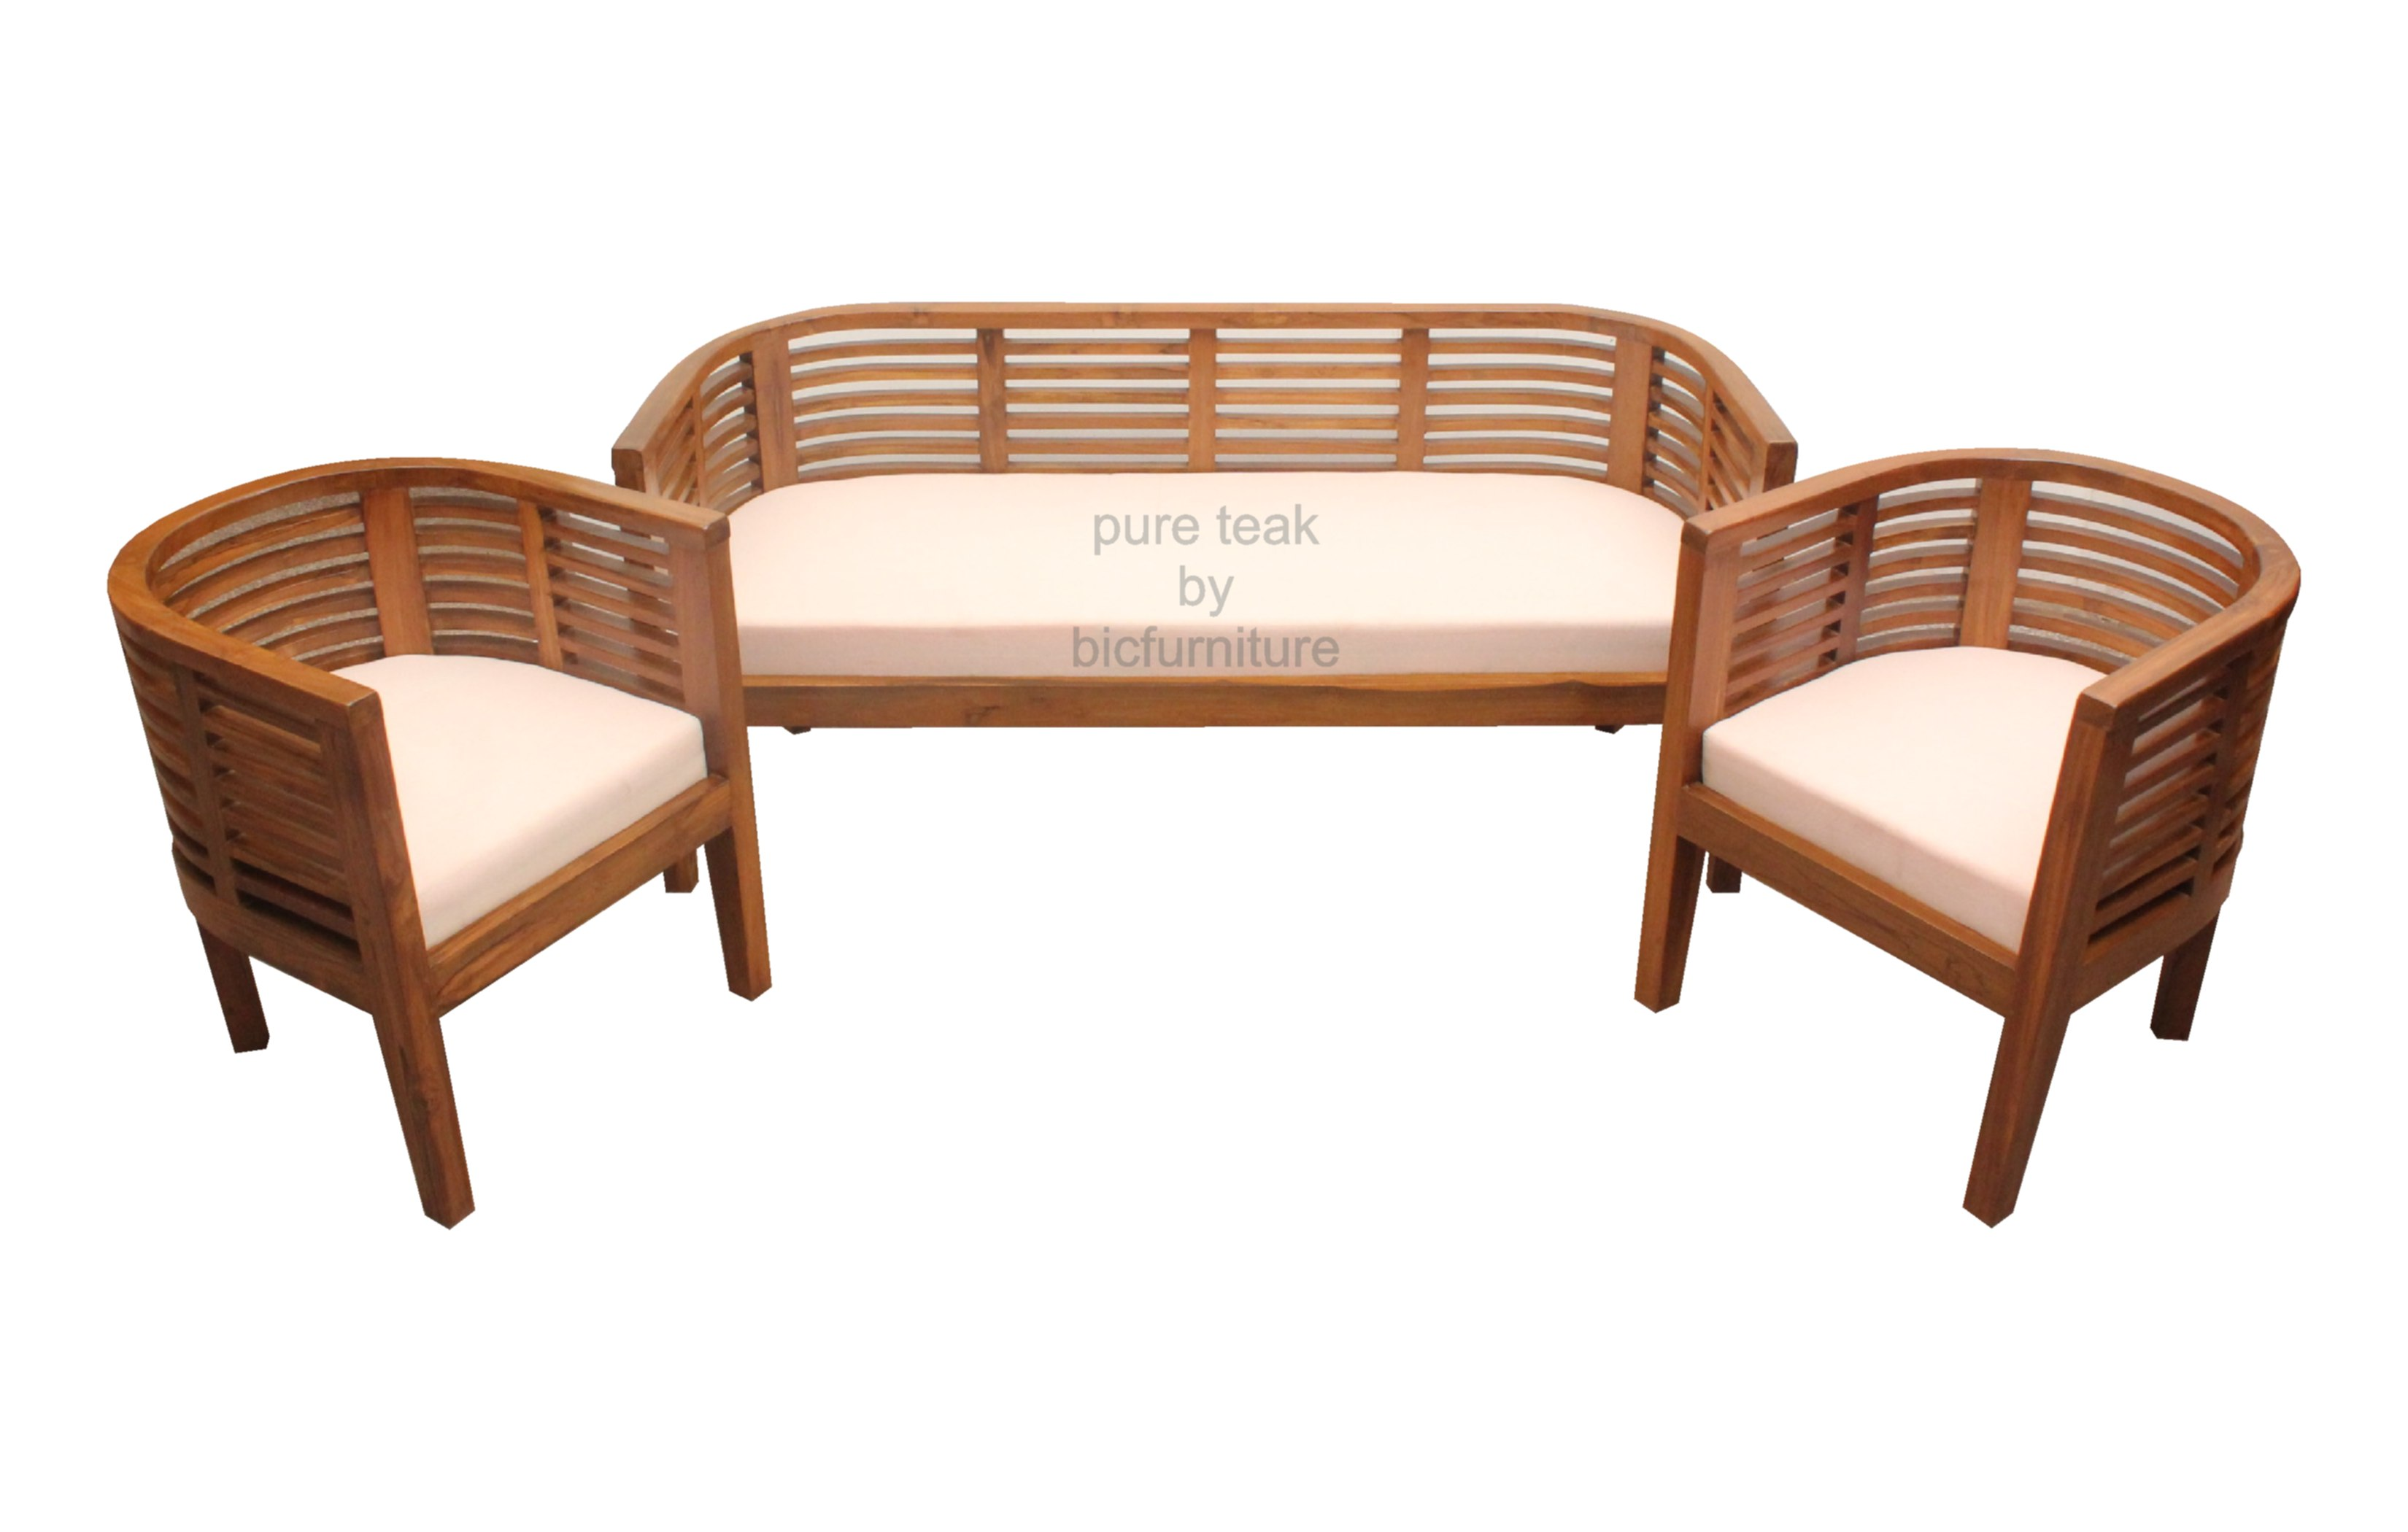 Teak wood furniture sofa set images for Wood furniture design sofa set